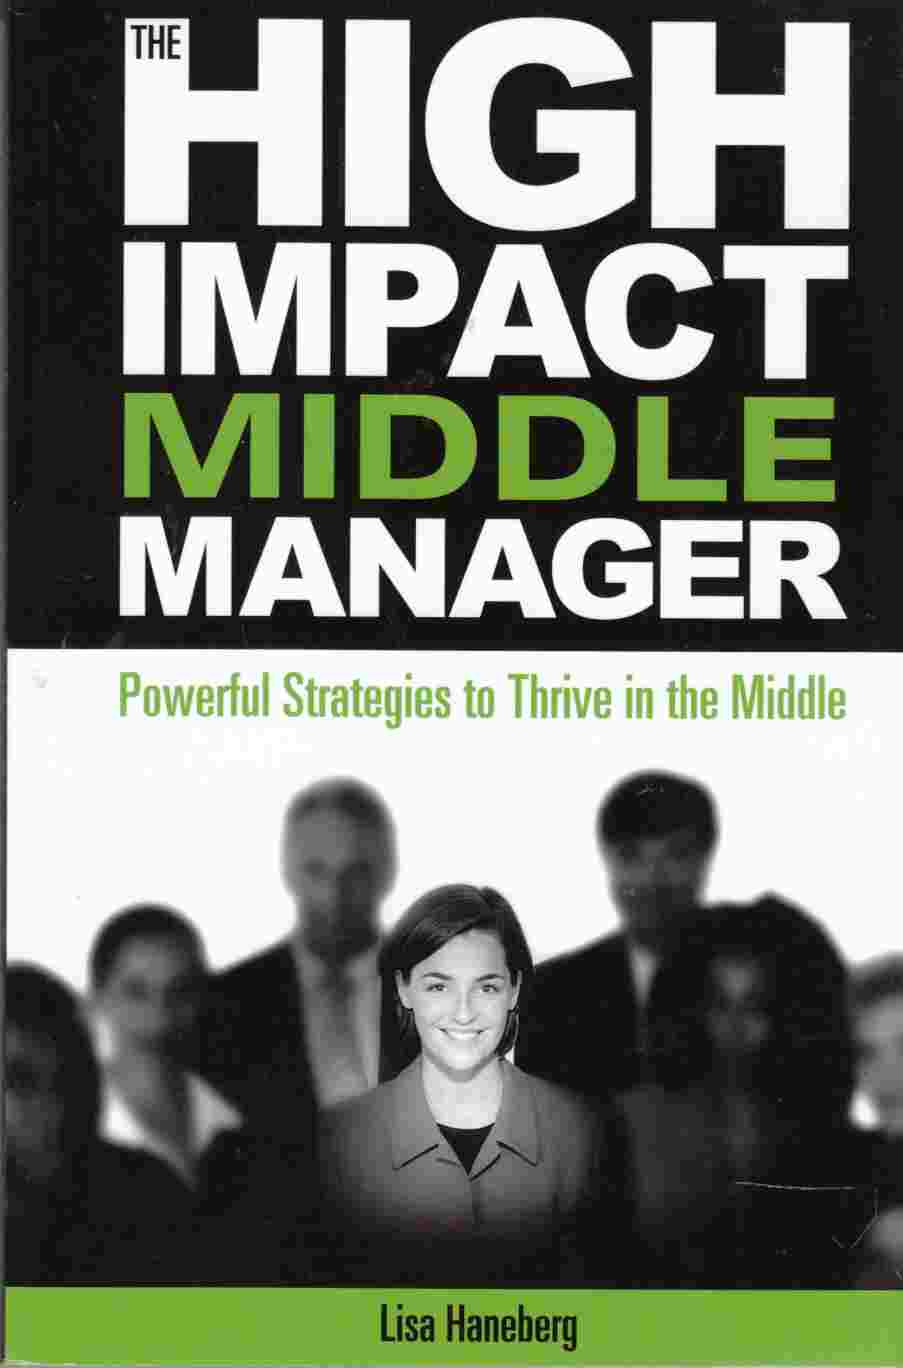 Image for The High Impact Middle Manager Powerful Strategies to Thrive in the Middle